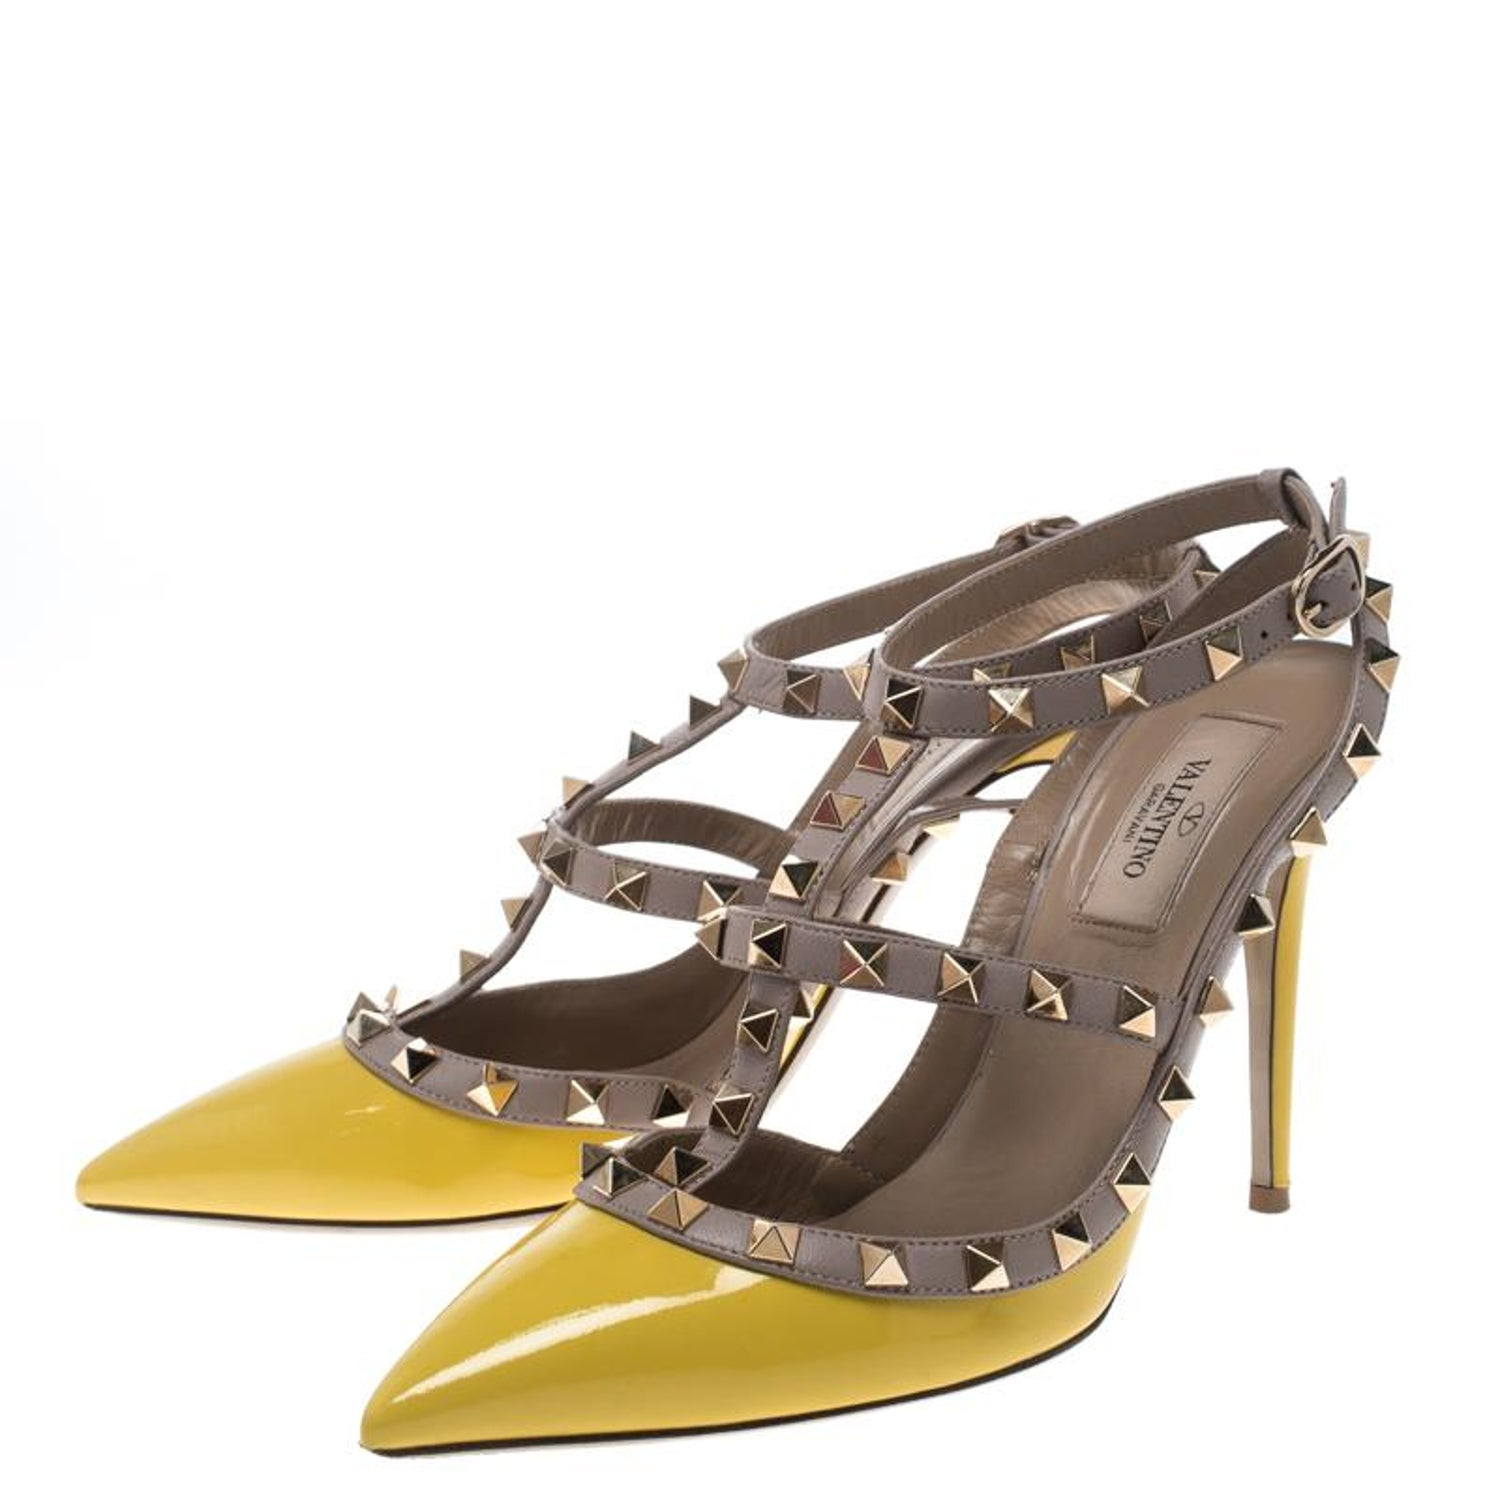 9aba1fae3cf2 Valentino Yellow and Beige Leather Rockstud Sandals Size 38 For Sale at  1stdibs